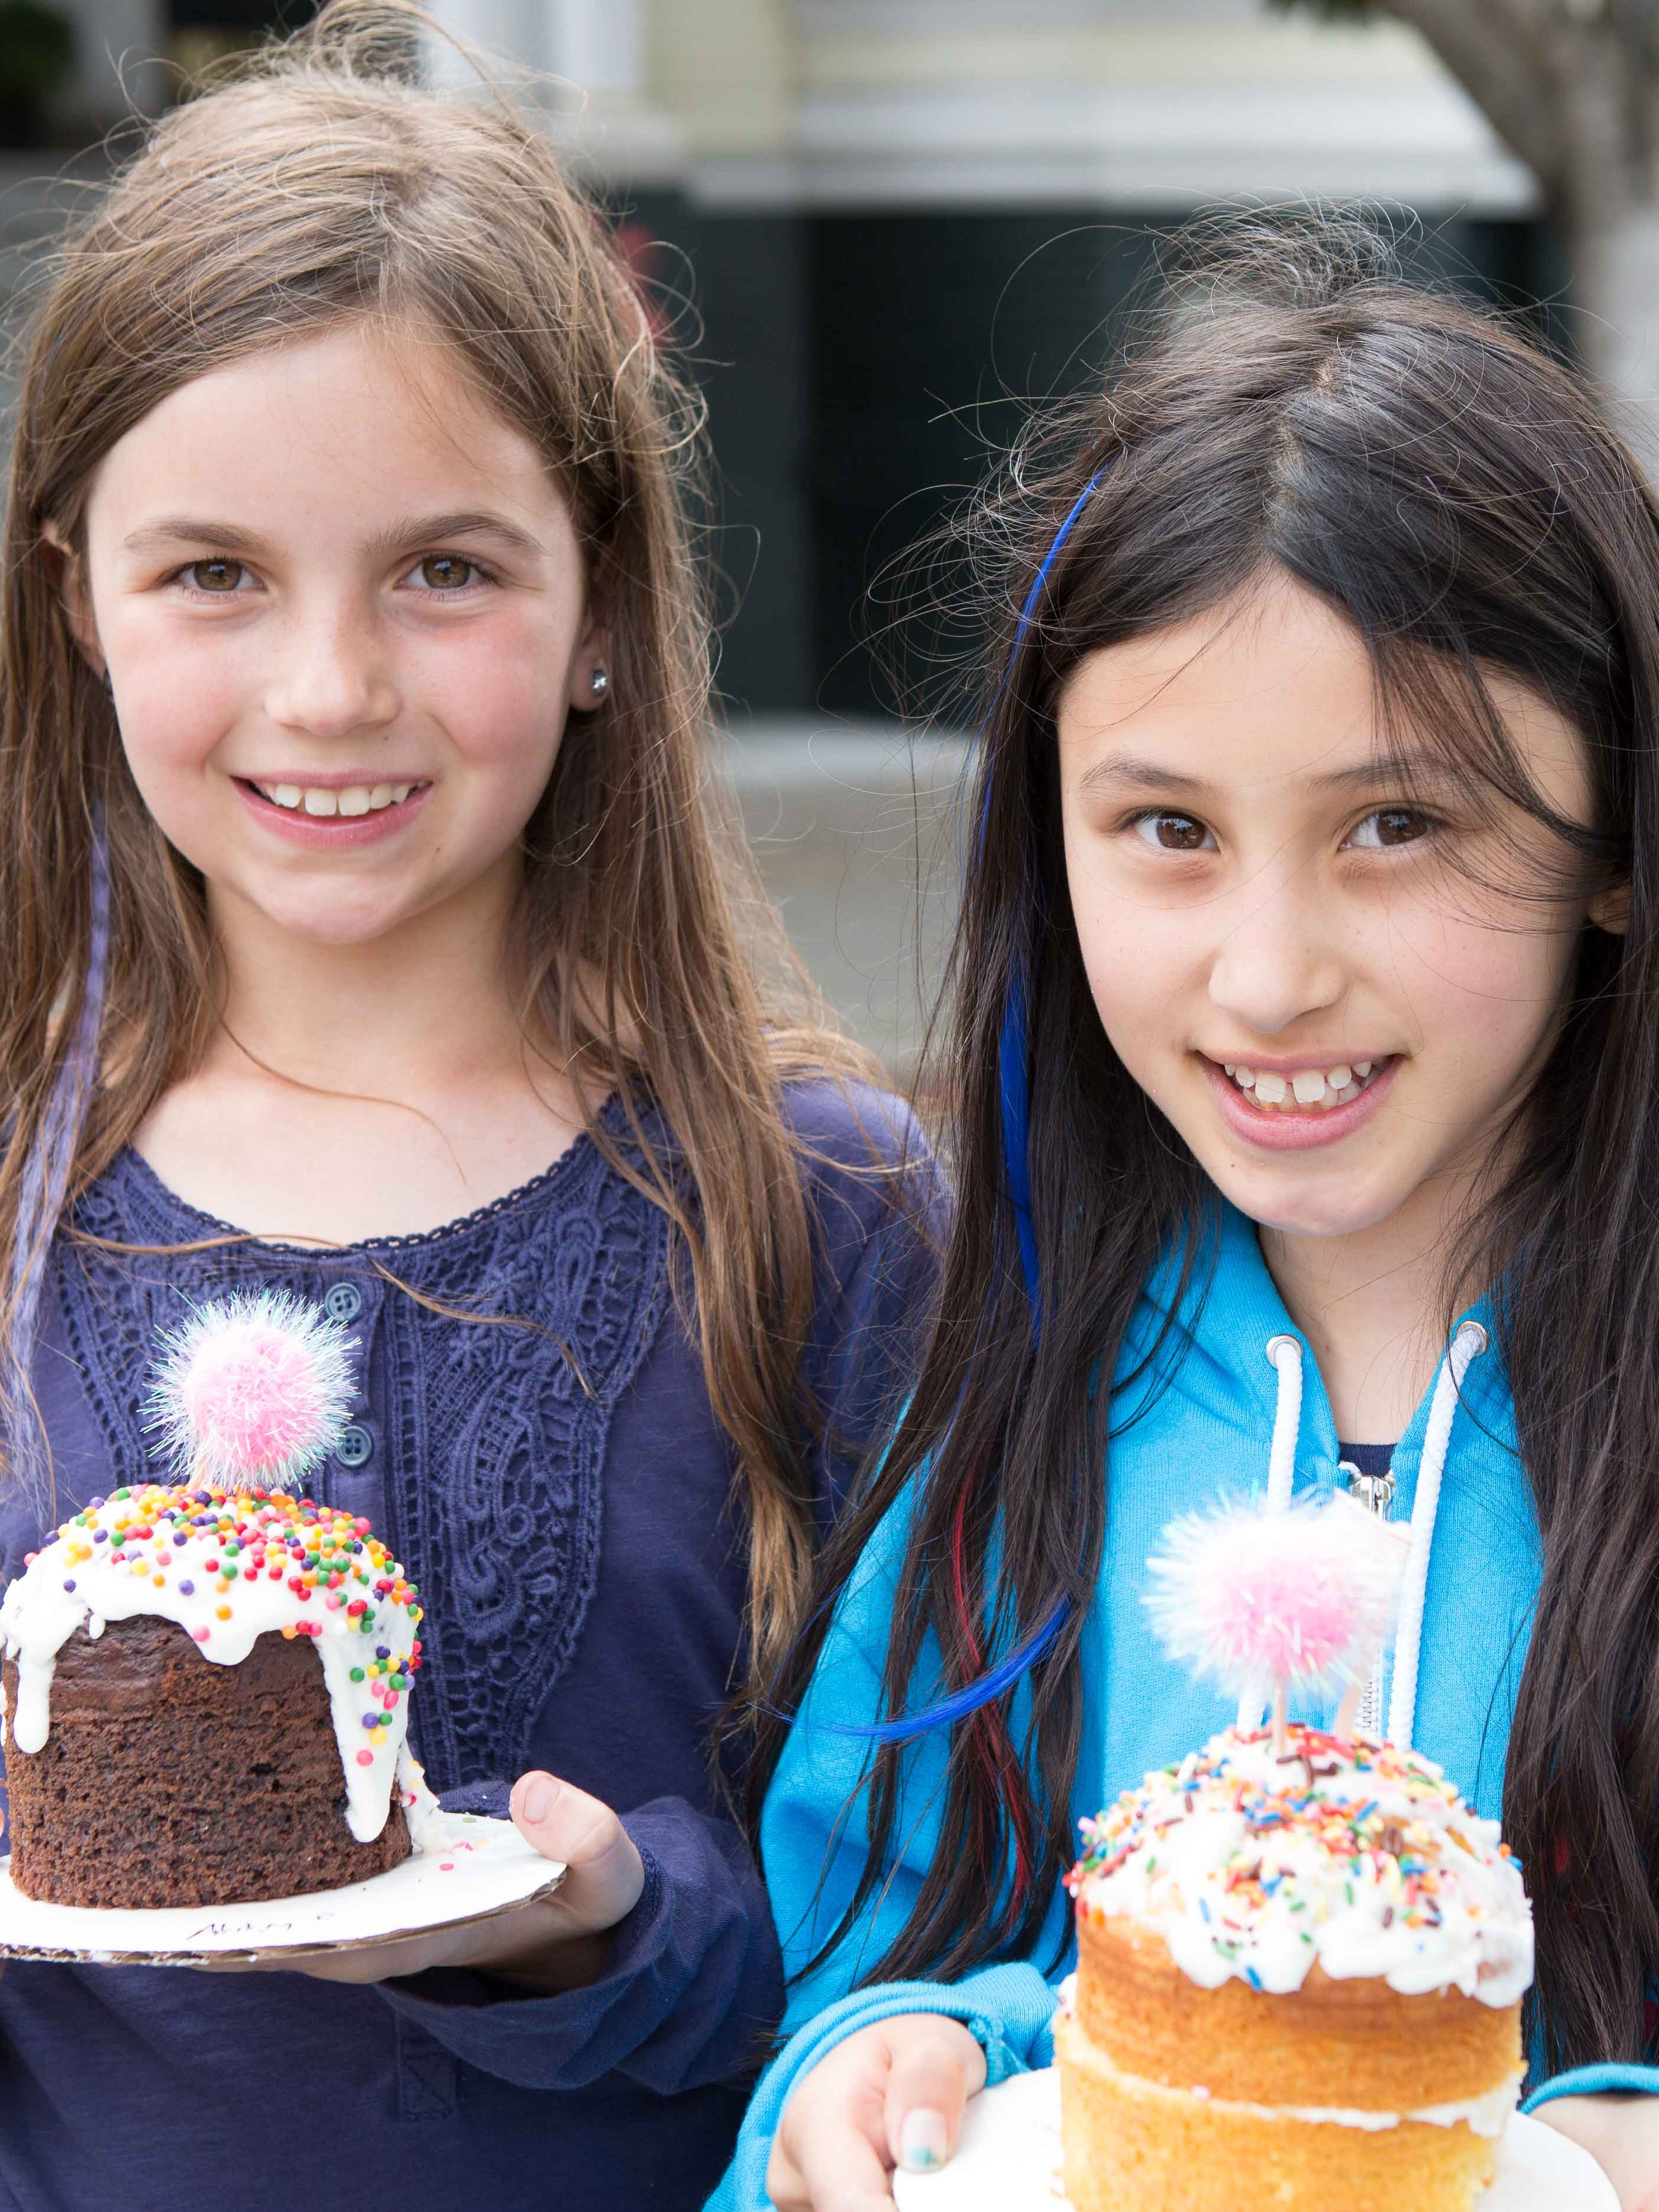 Two girls holding decorated cupcakes at an outdoor school festival